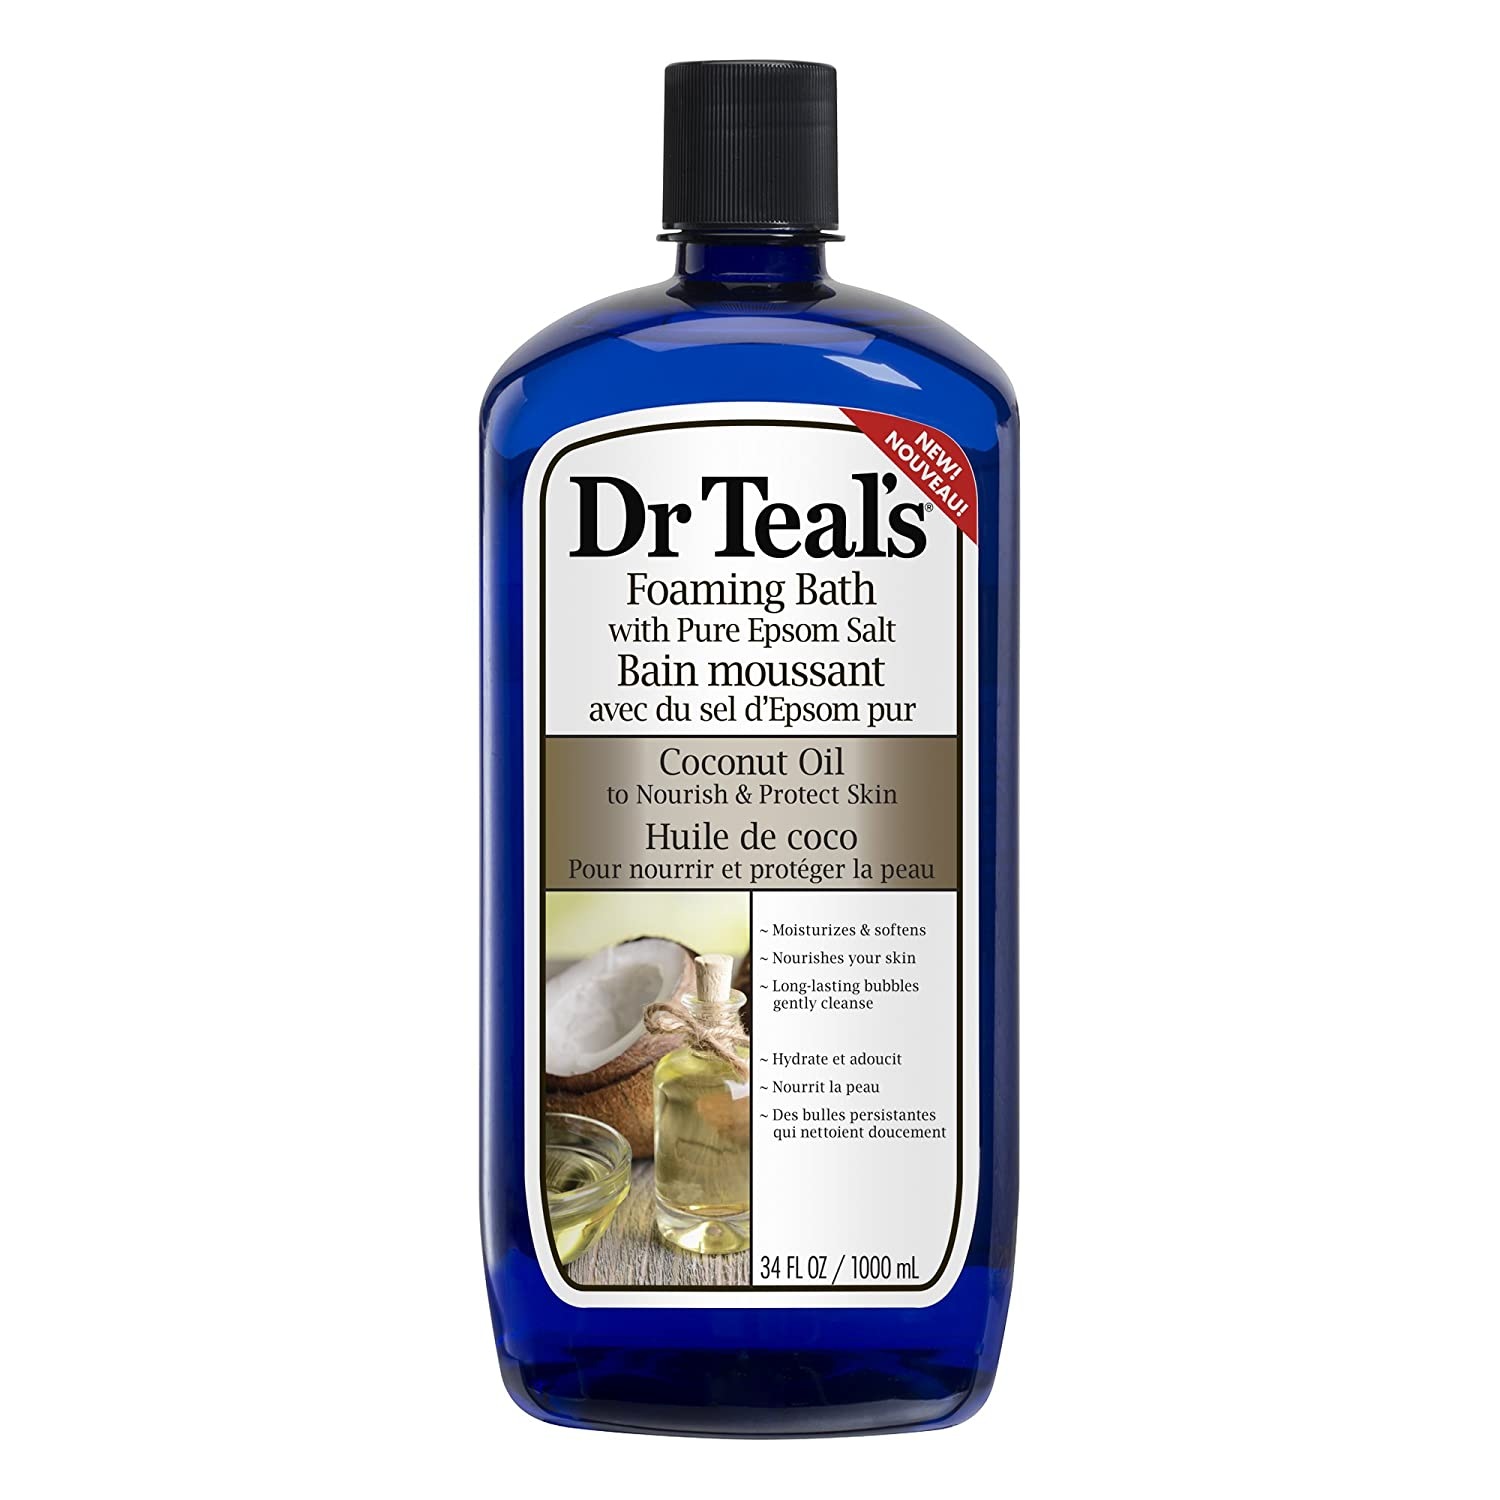 Dr Teal's Coconut oil foaming bath, 1000 L Dr Teal' s SHOMAMS1015